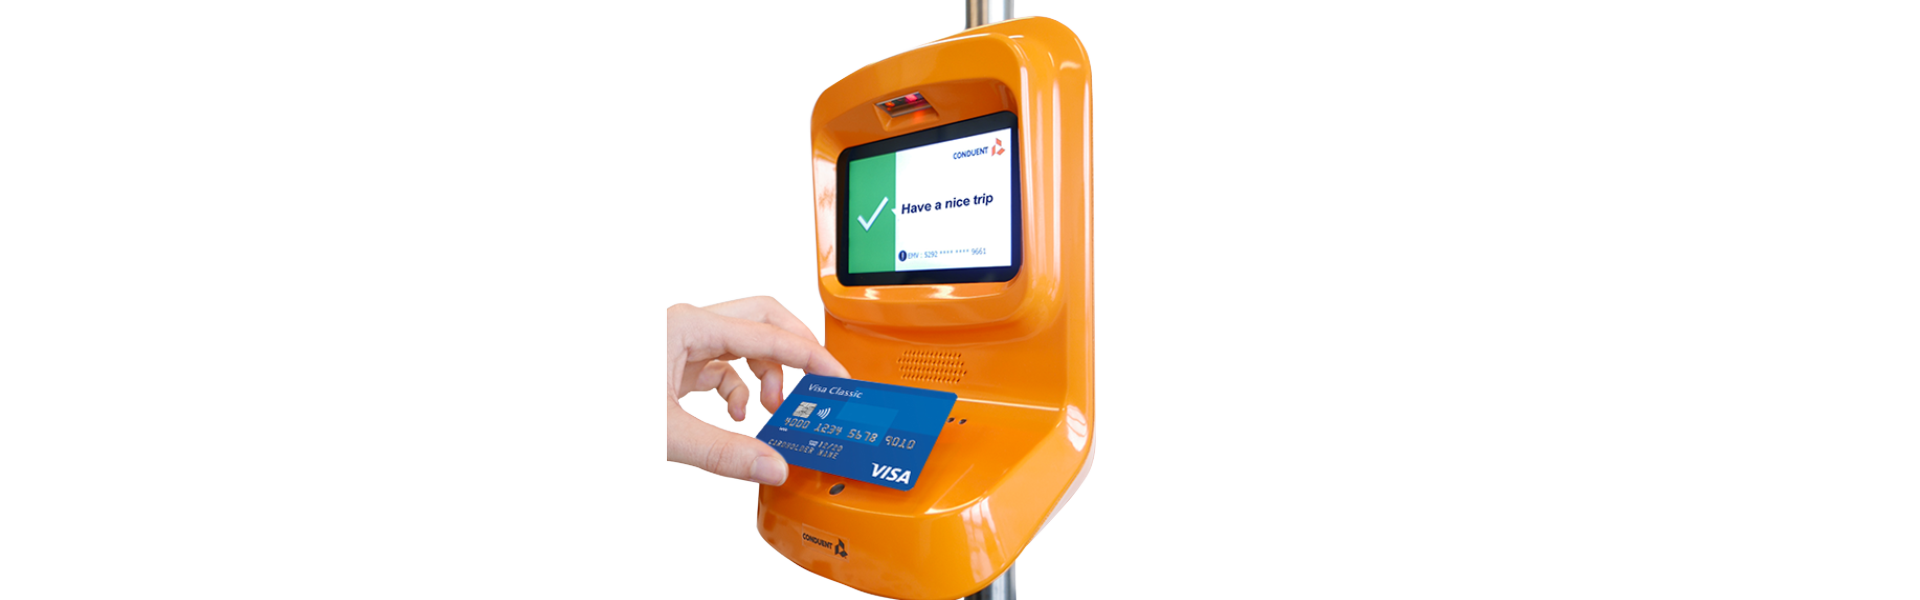 Conduent Transportation Receives 'Visa Ready for Transit' Certification for its ATLAS® Ops Fare Collection System to Boost Contactless Payments for Mass Transit Systems Globally